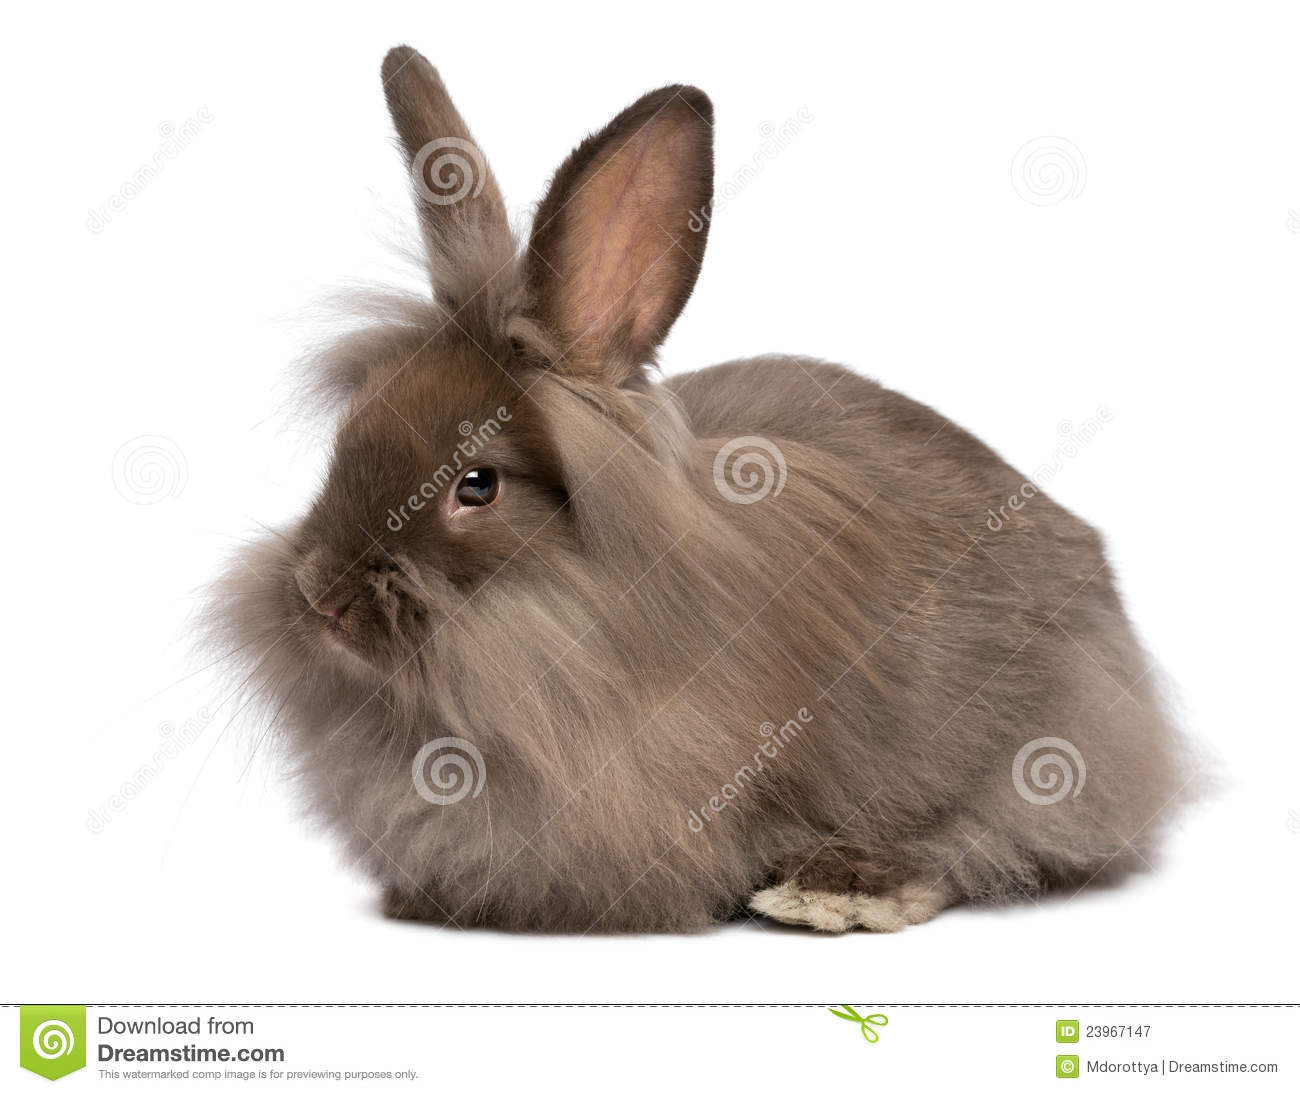 Cute Fat Baby Wallpapers A Cute Lying Chocolate Lionhead Bunny Rabbit Stock Image